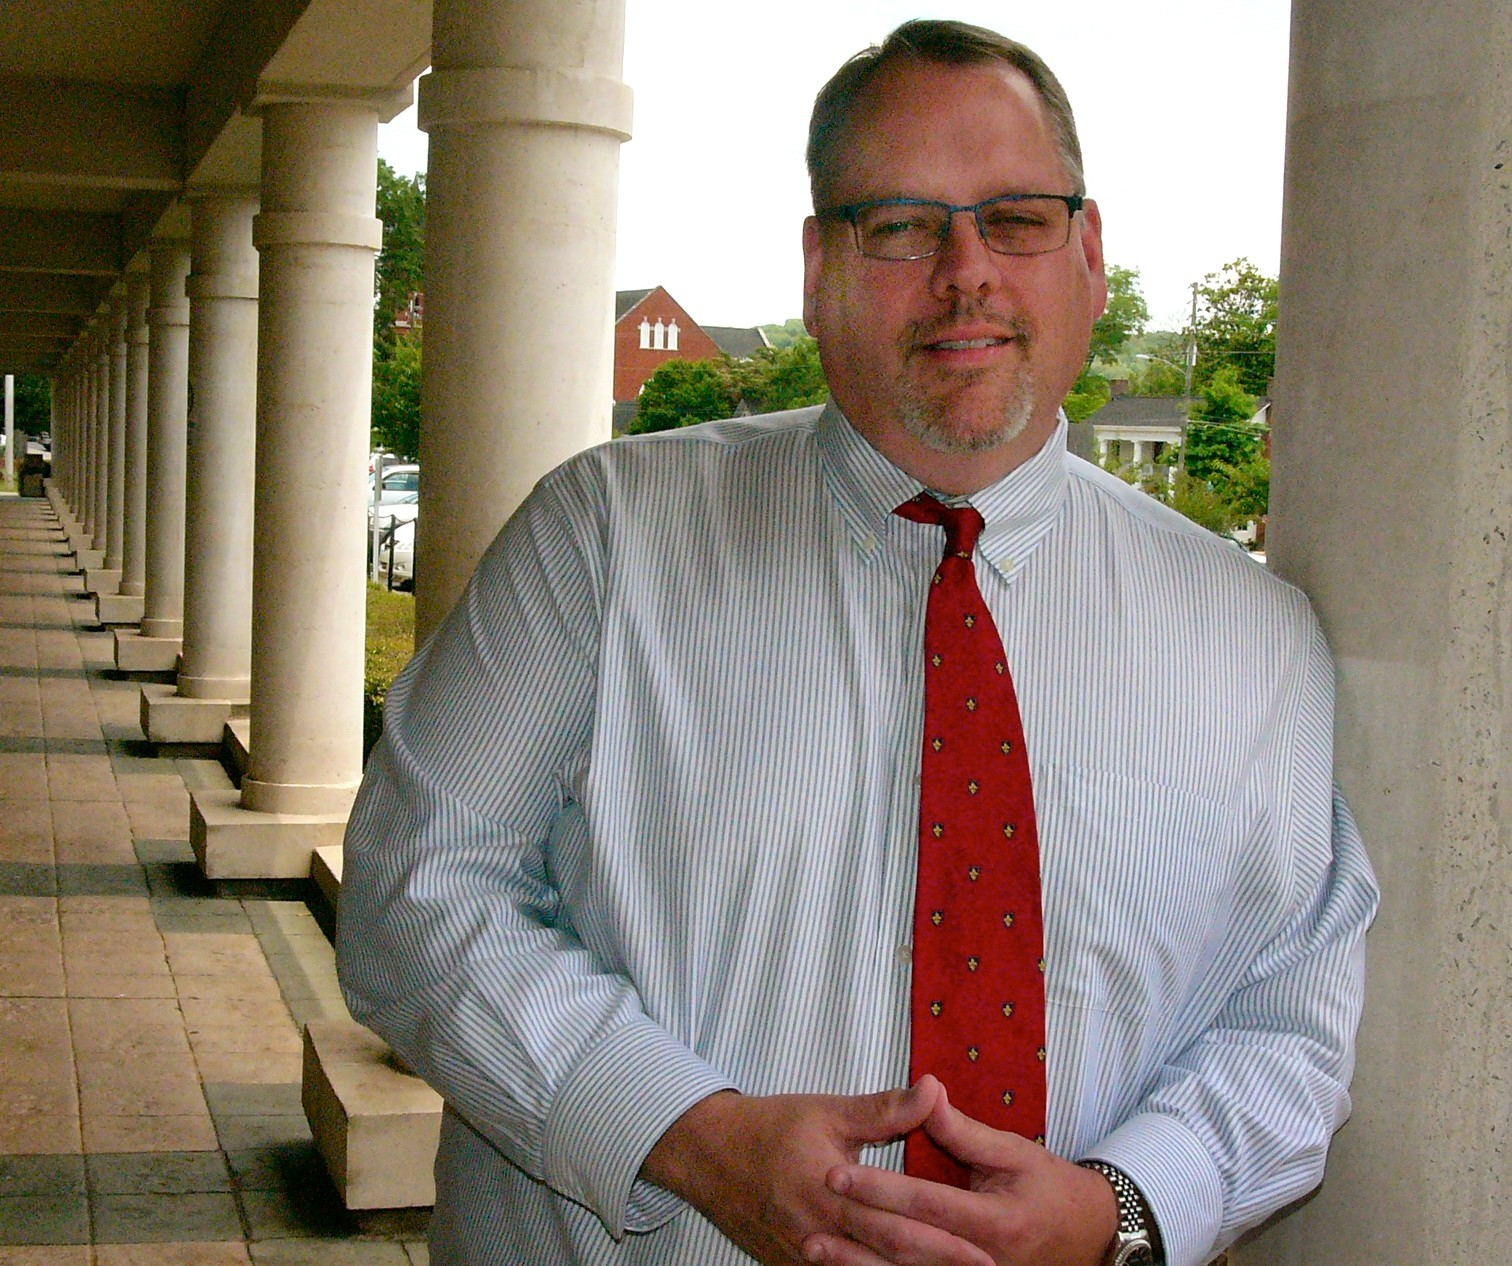 Bartow County Manager Peter Olson